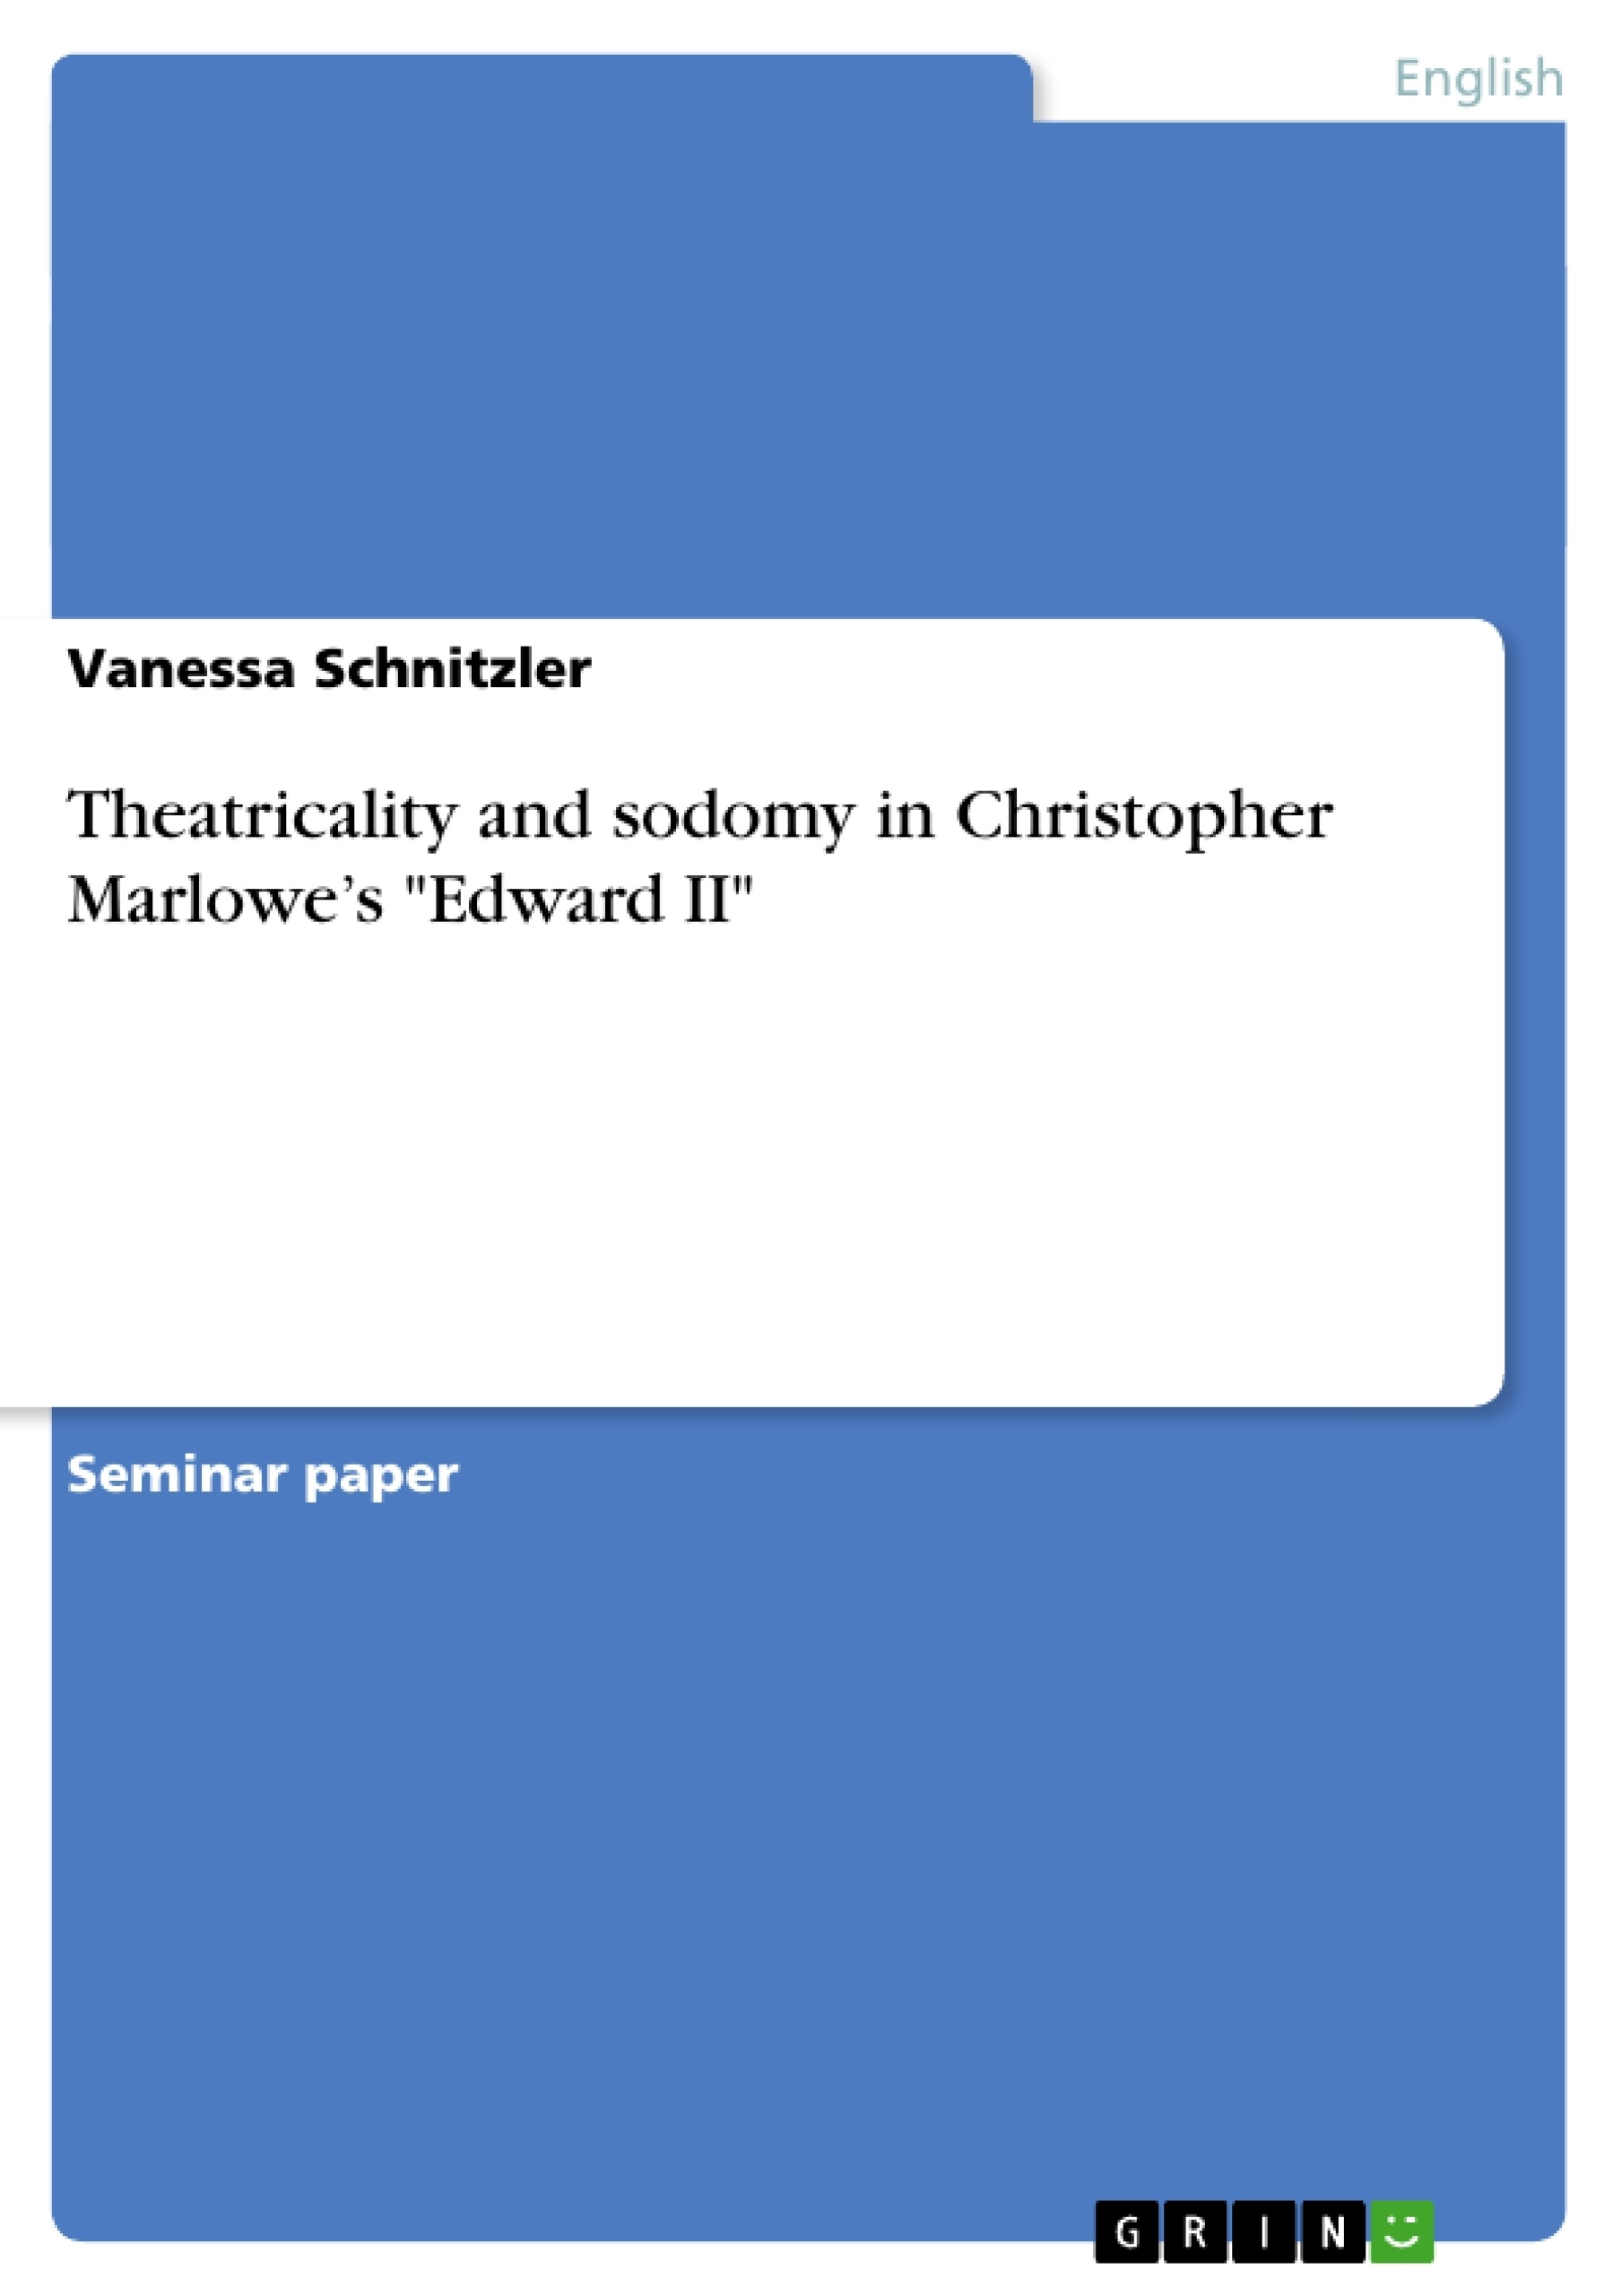 """Title: Theatricality and sodomy in Christopher Marlowe's """"Edward II"""""""